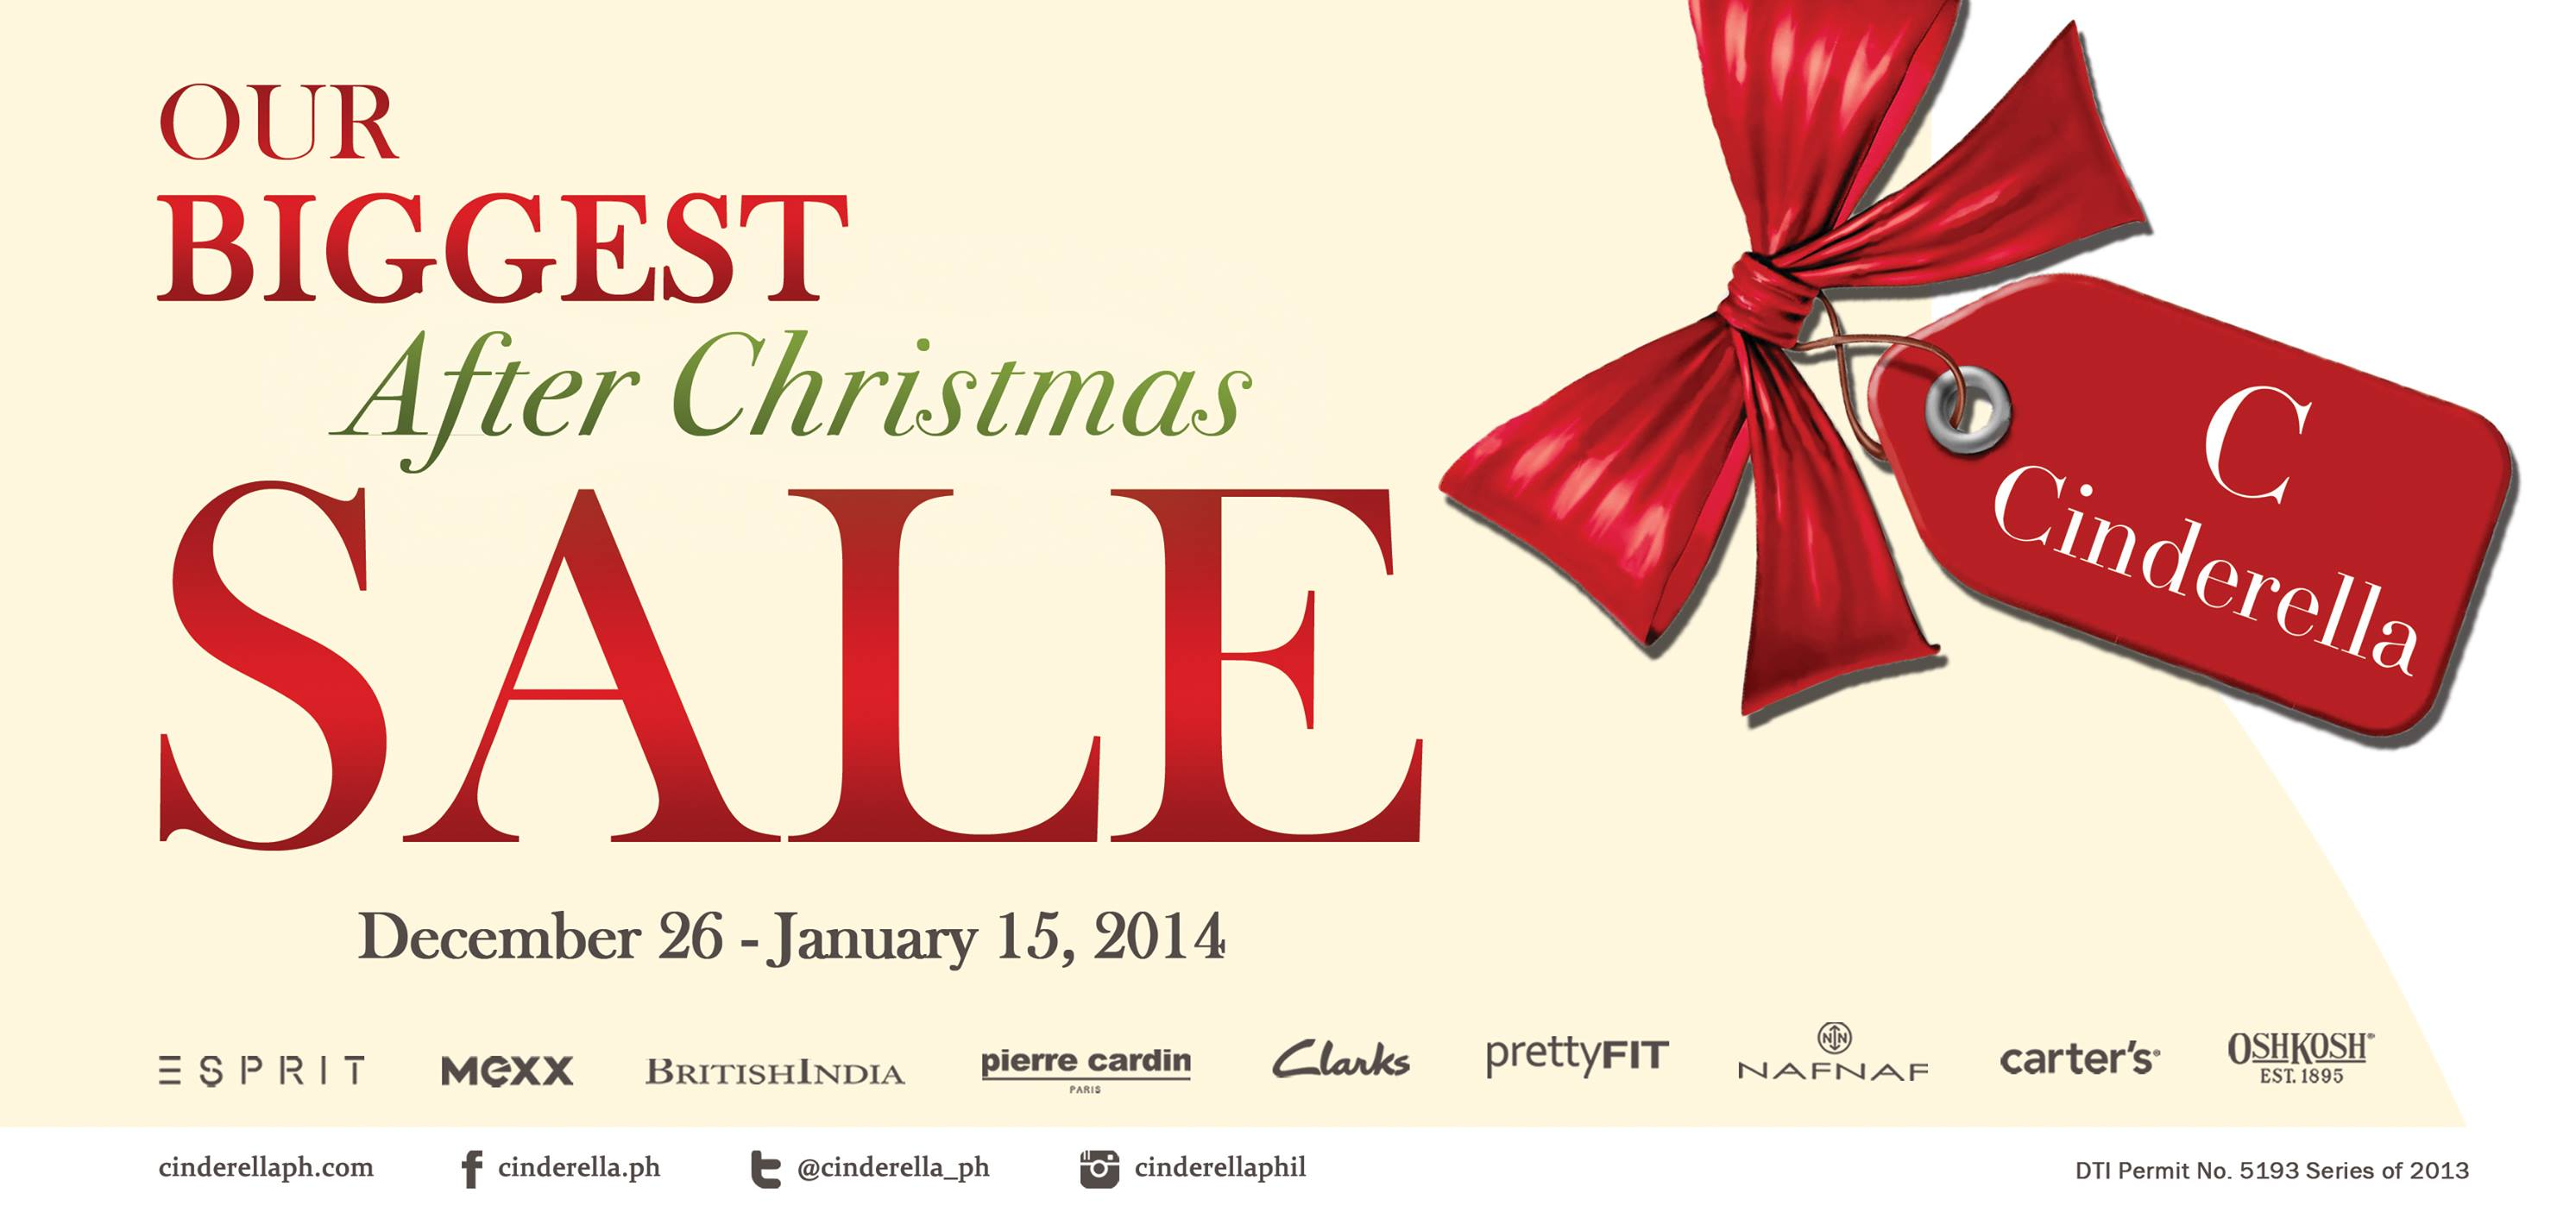 Cinderella After Christmas Sale December 2013 - January 2014